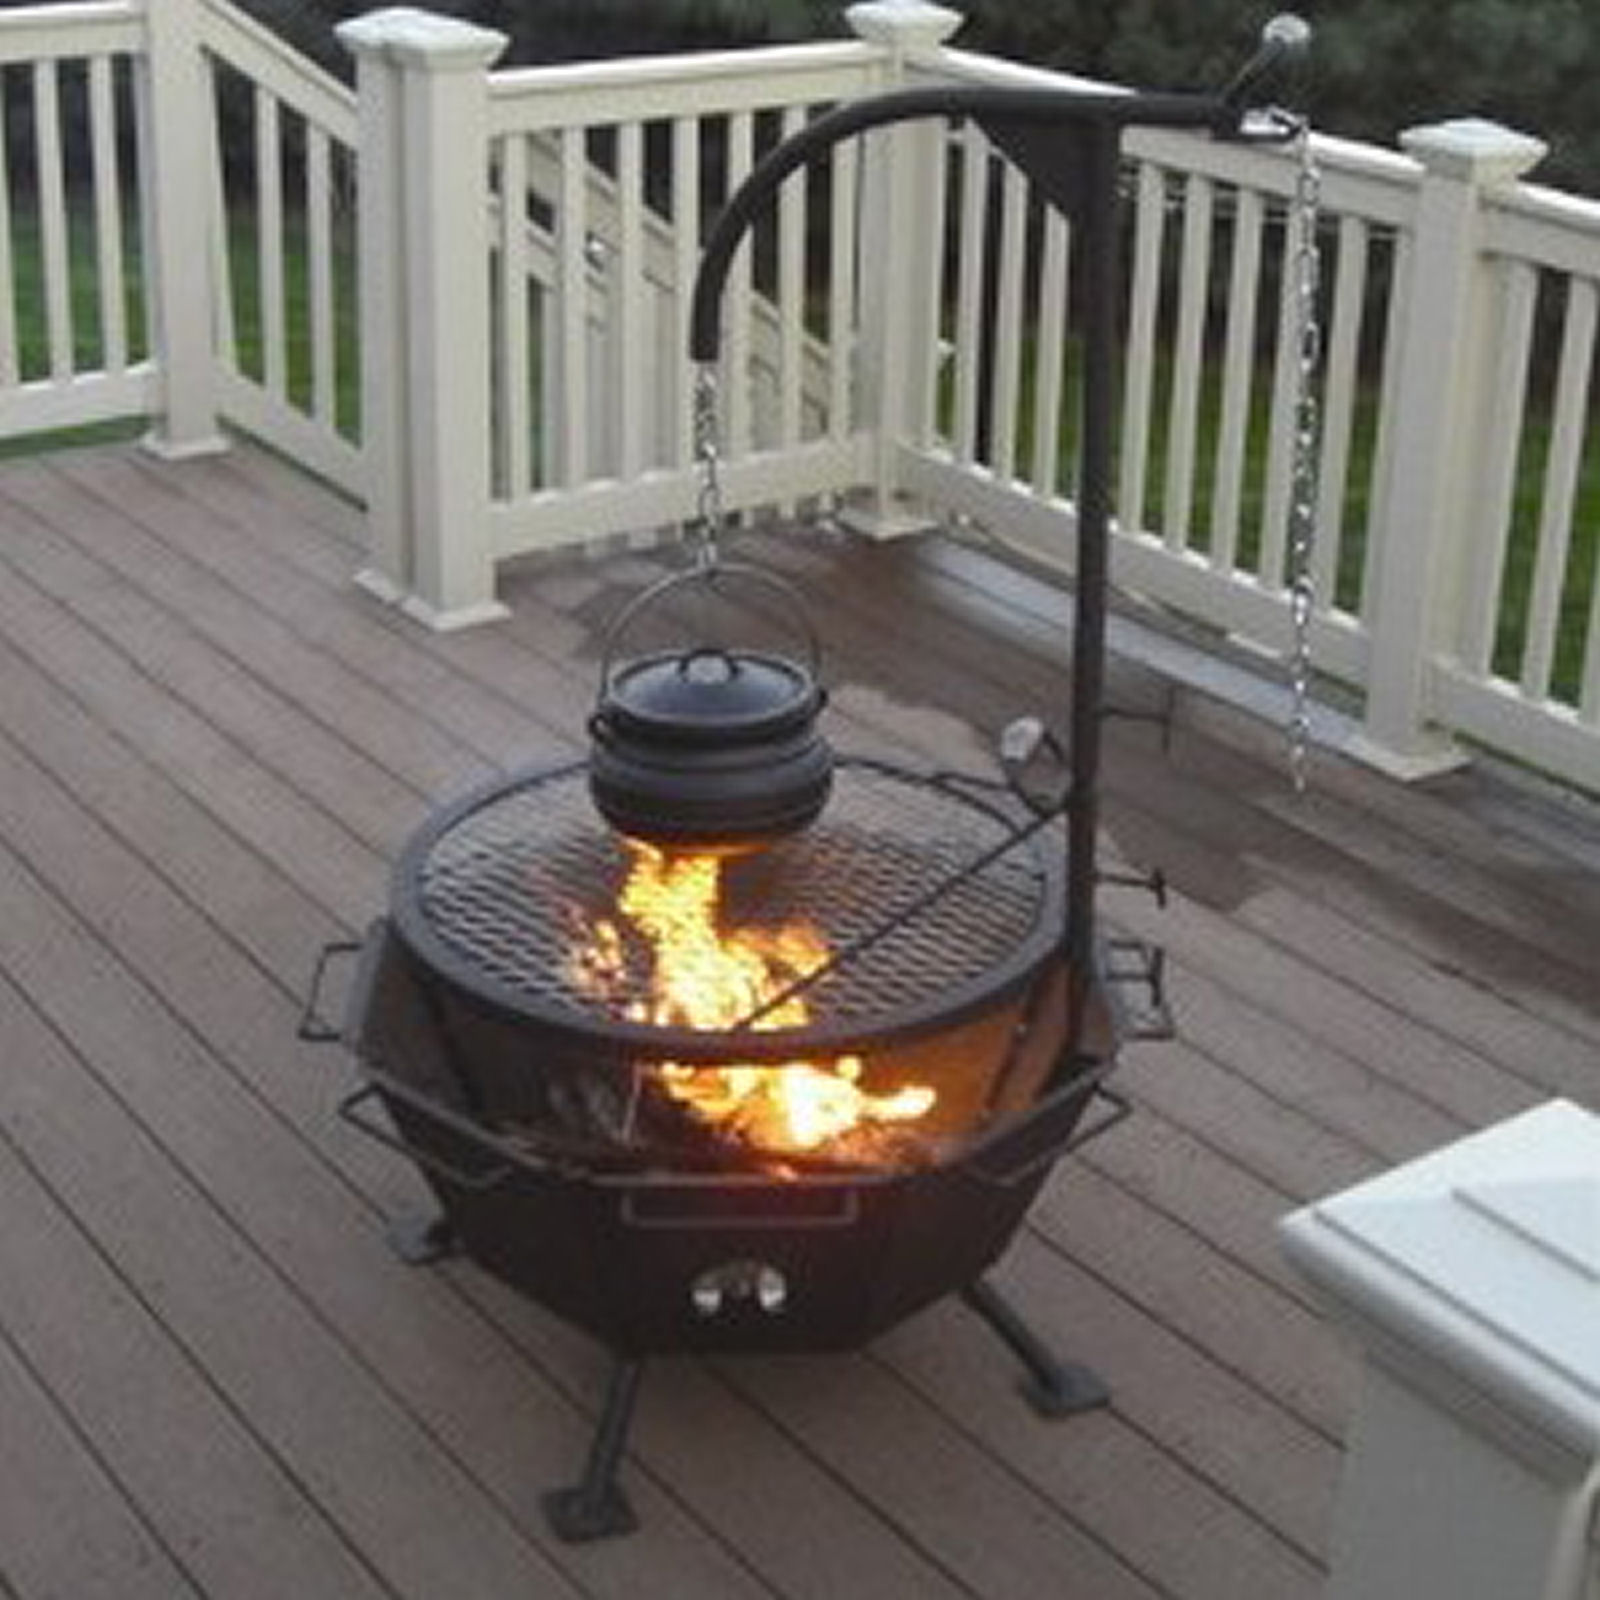 Backyard Fire Pit Stainless Steel Outdoor Cooking All-in